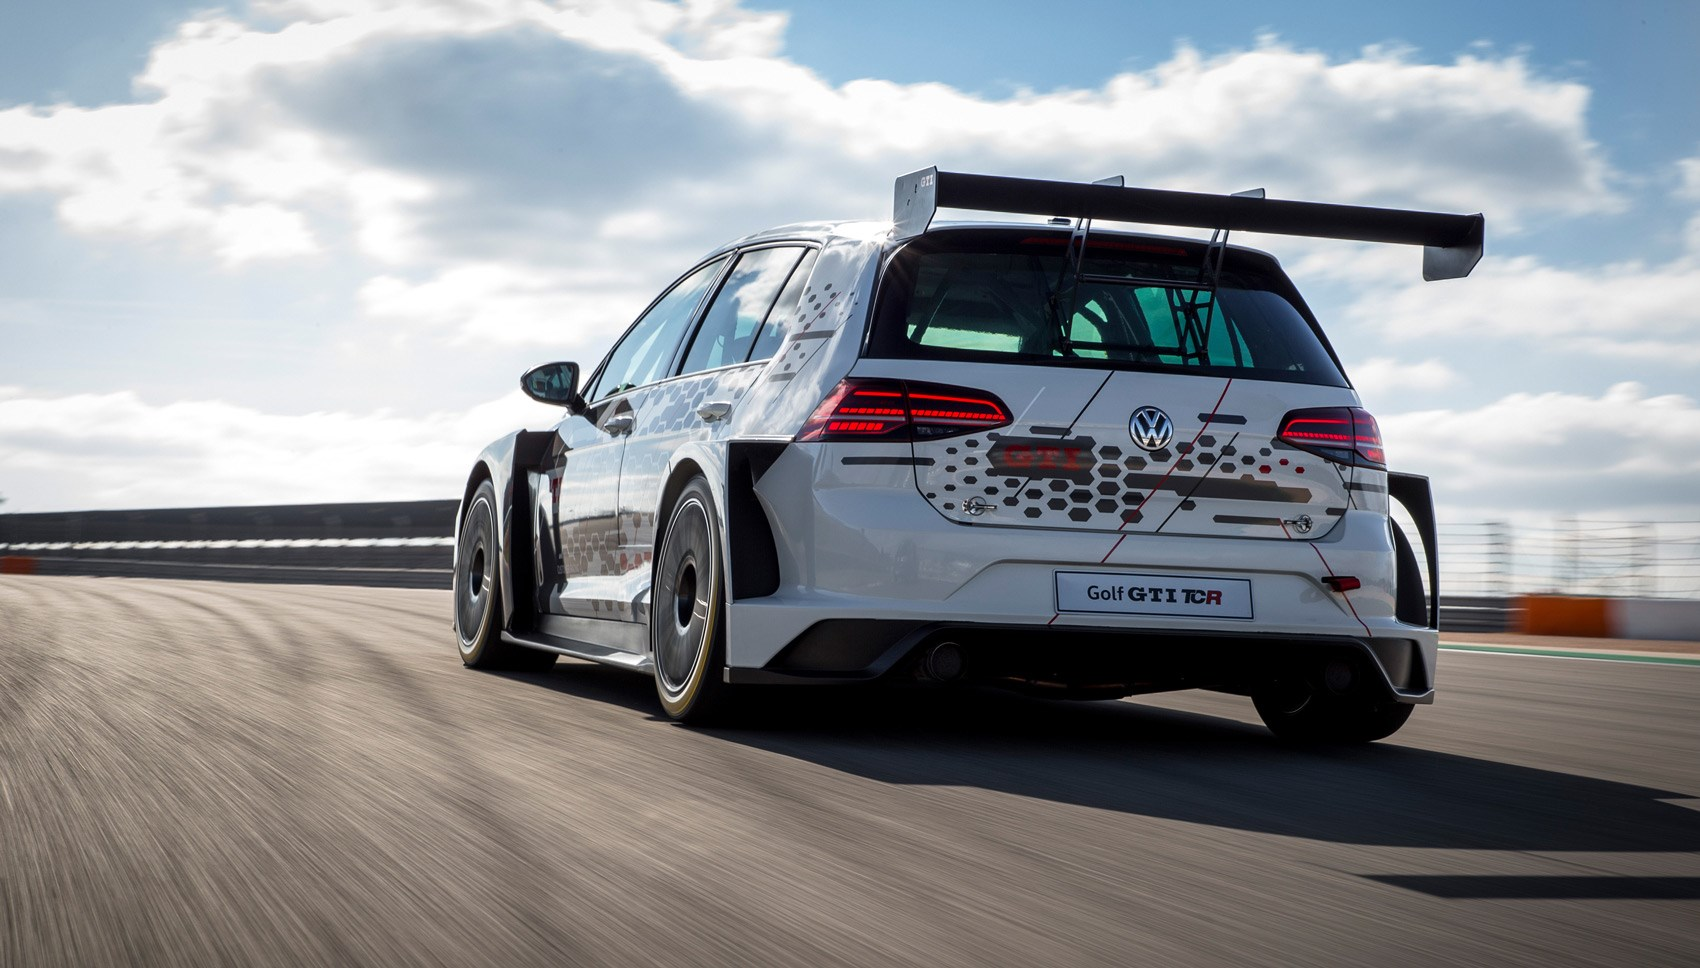 Golf GTI TCR rear tracking